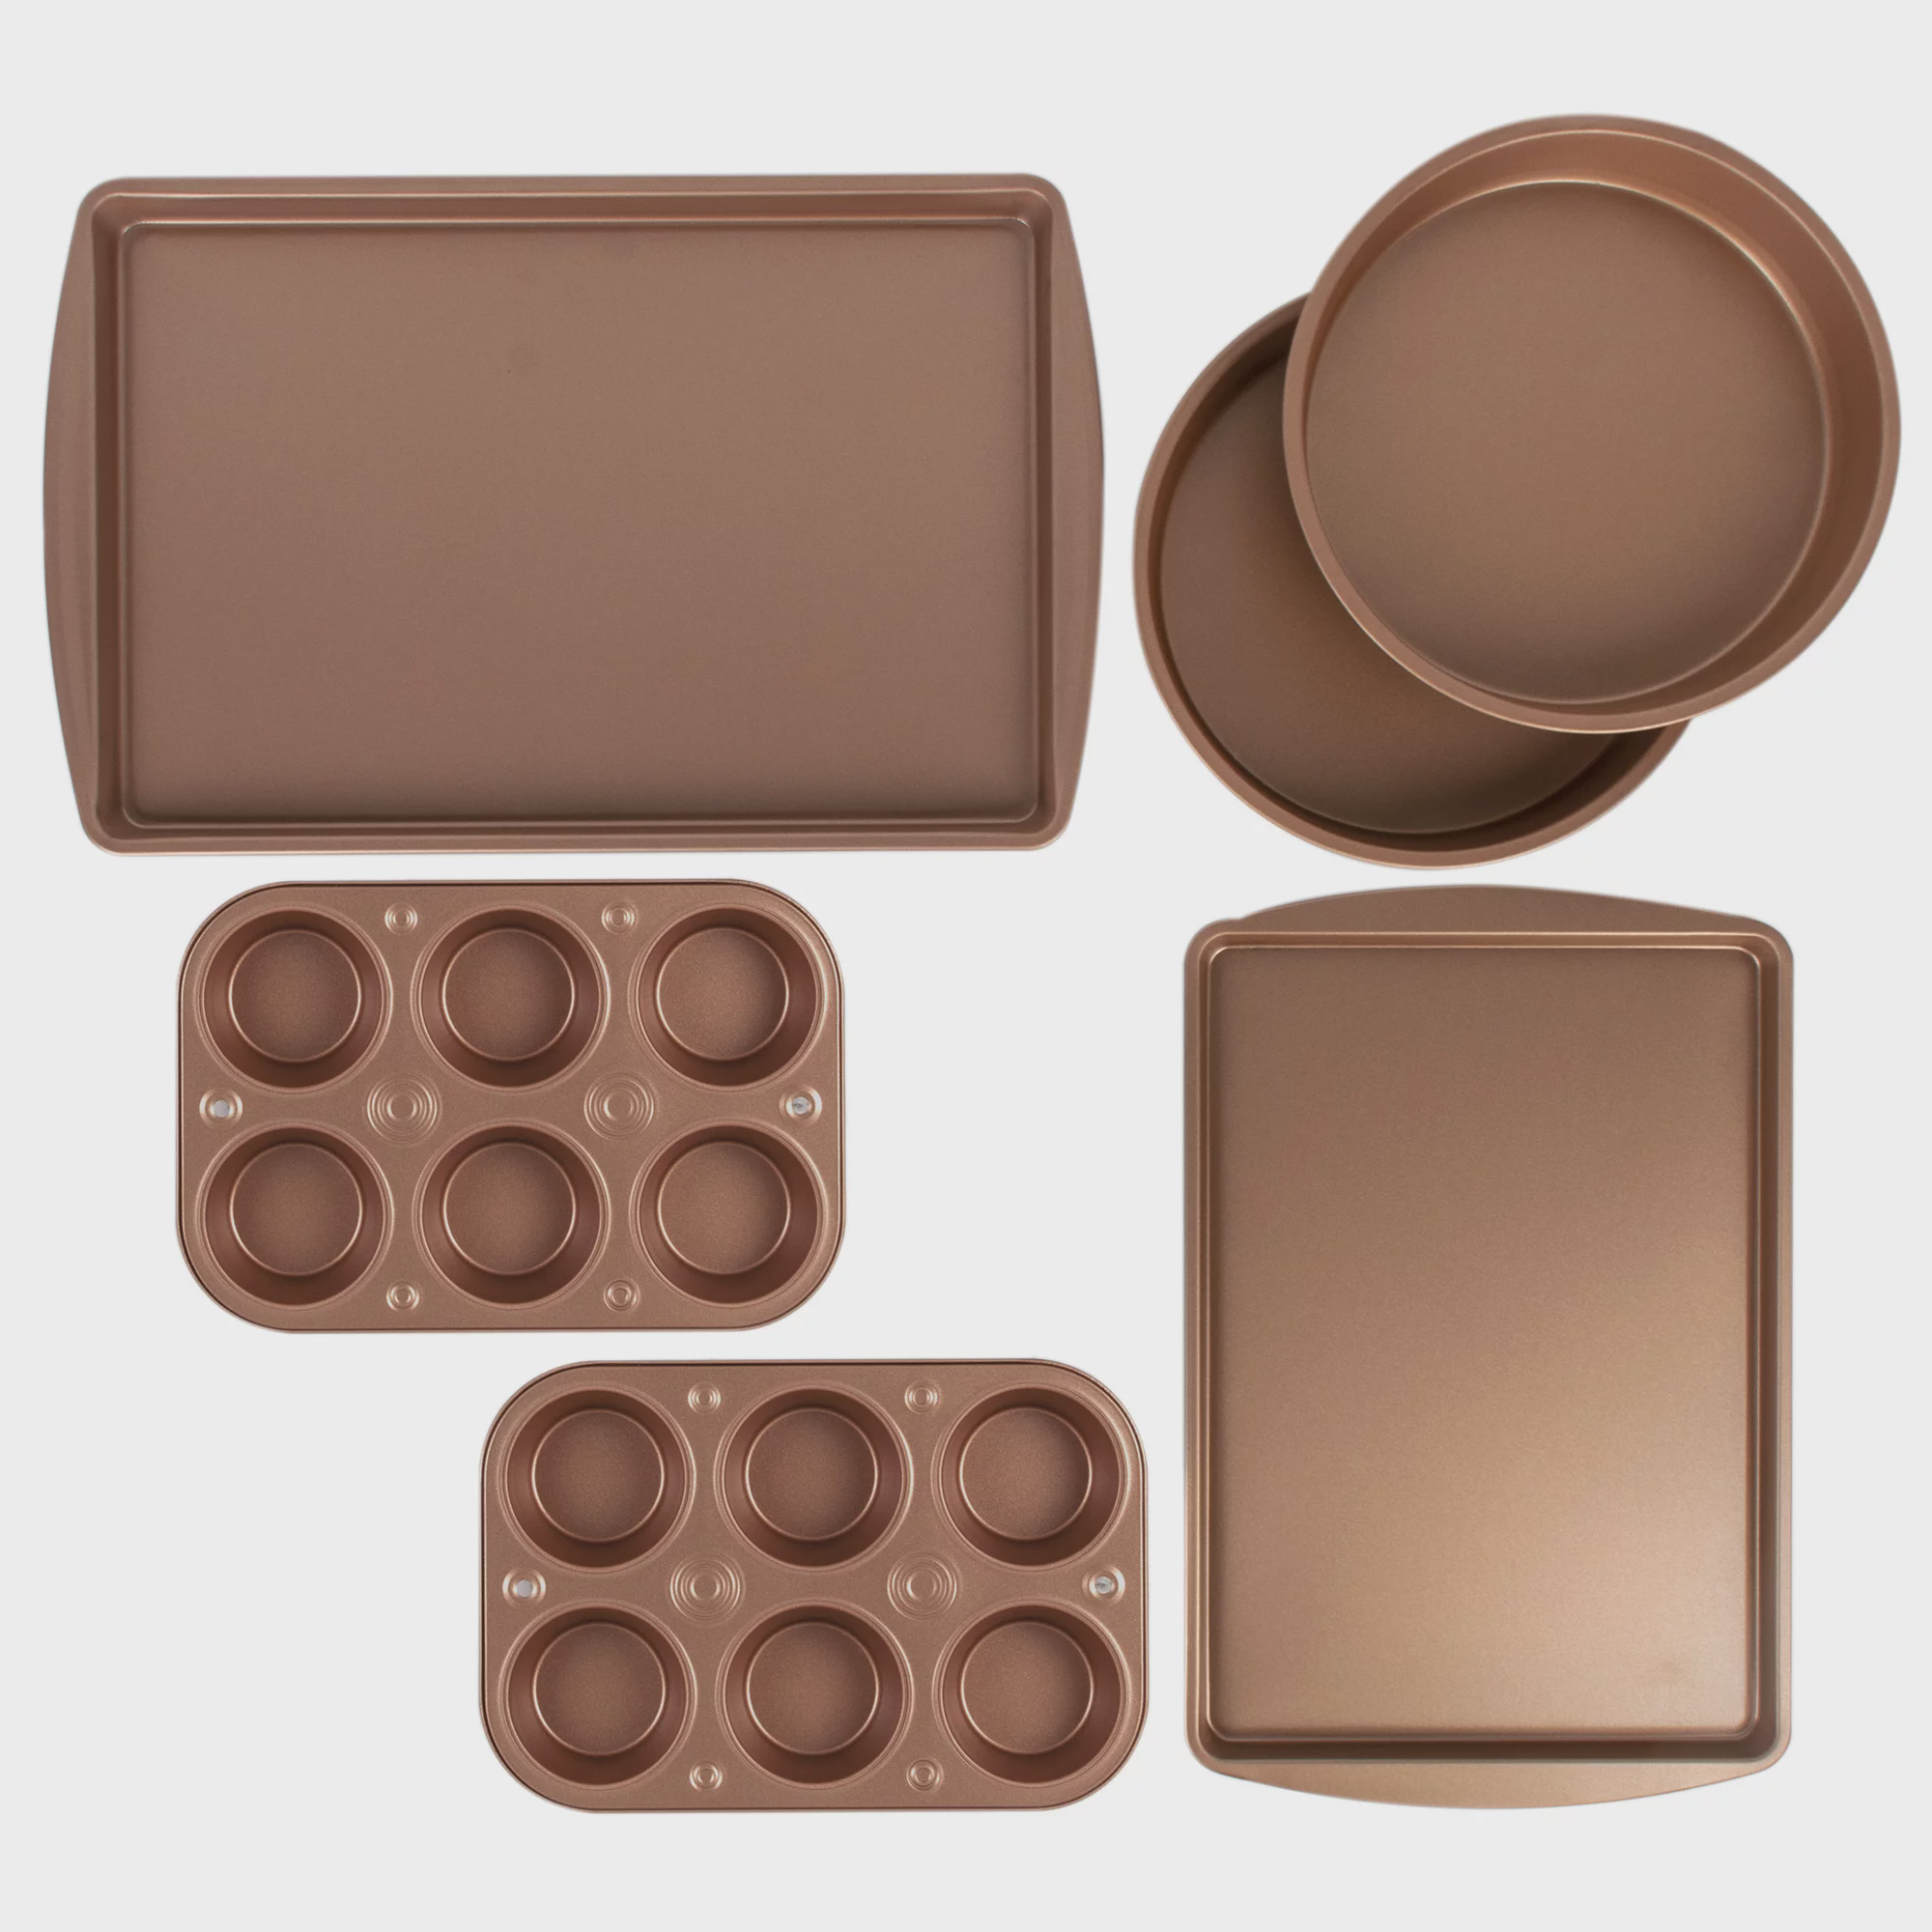 BakerEze 6 Piece Copper Nonstick Bakeware Set, Muffin Pans, Cake Pan, Cookie Pans by G&S Metal Products Company, Inc.